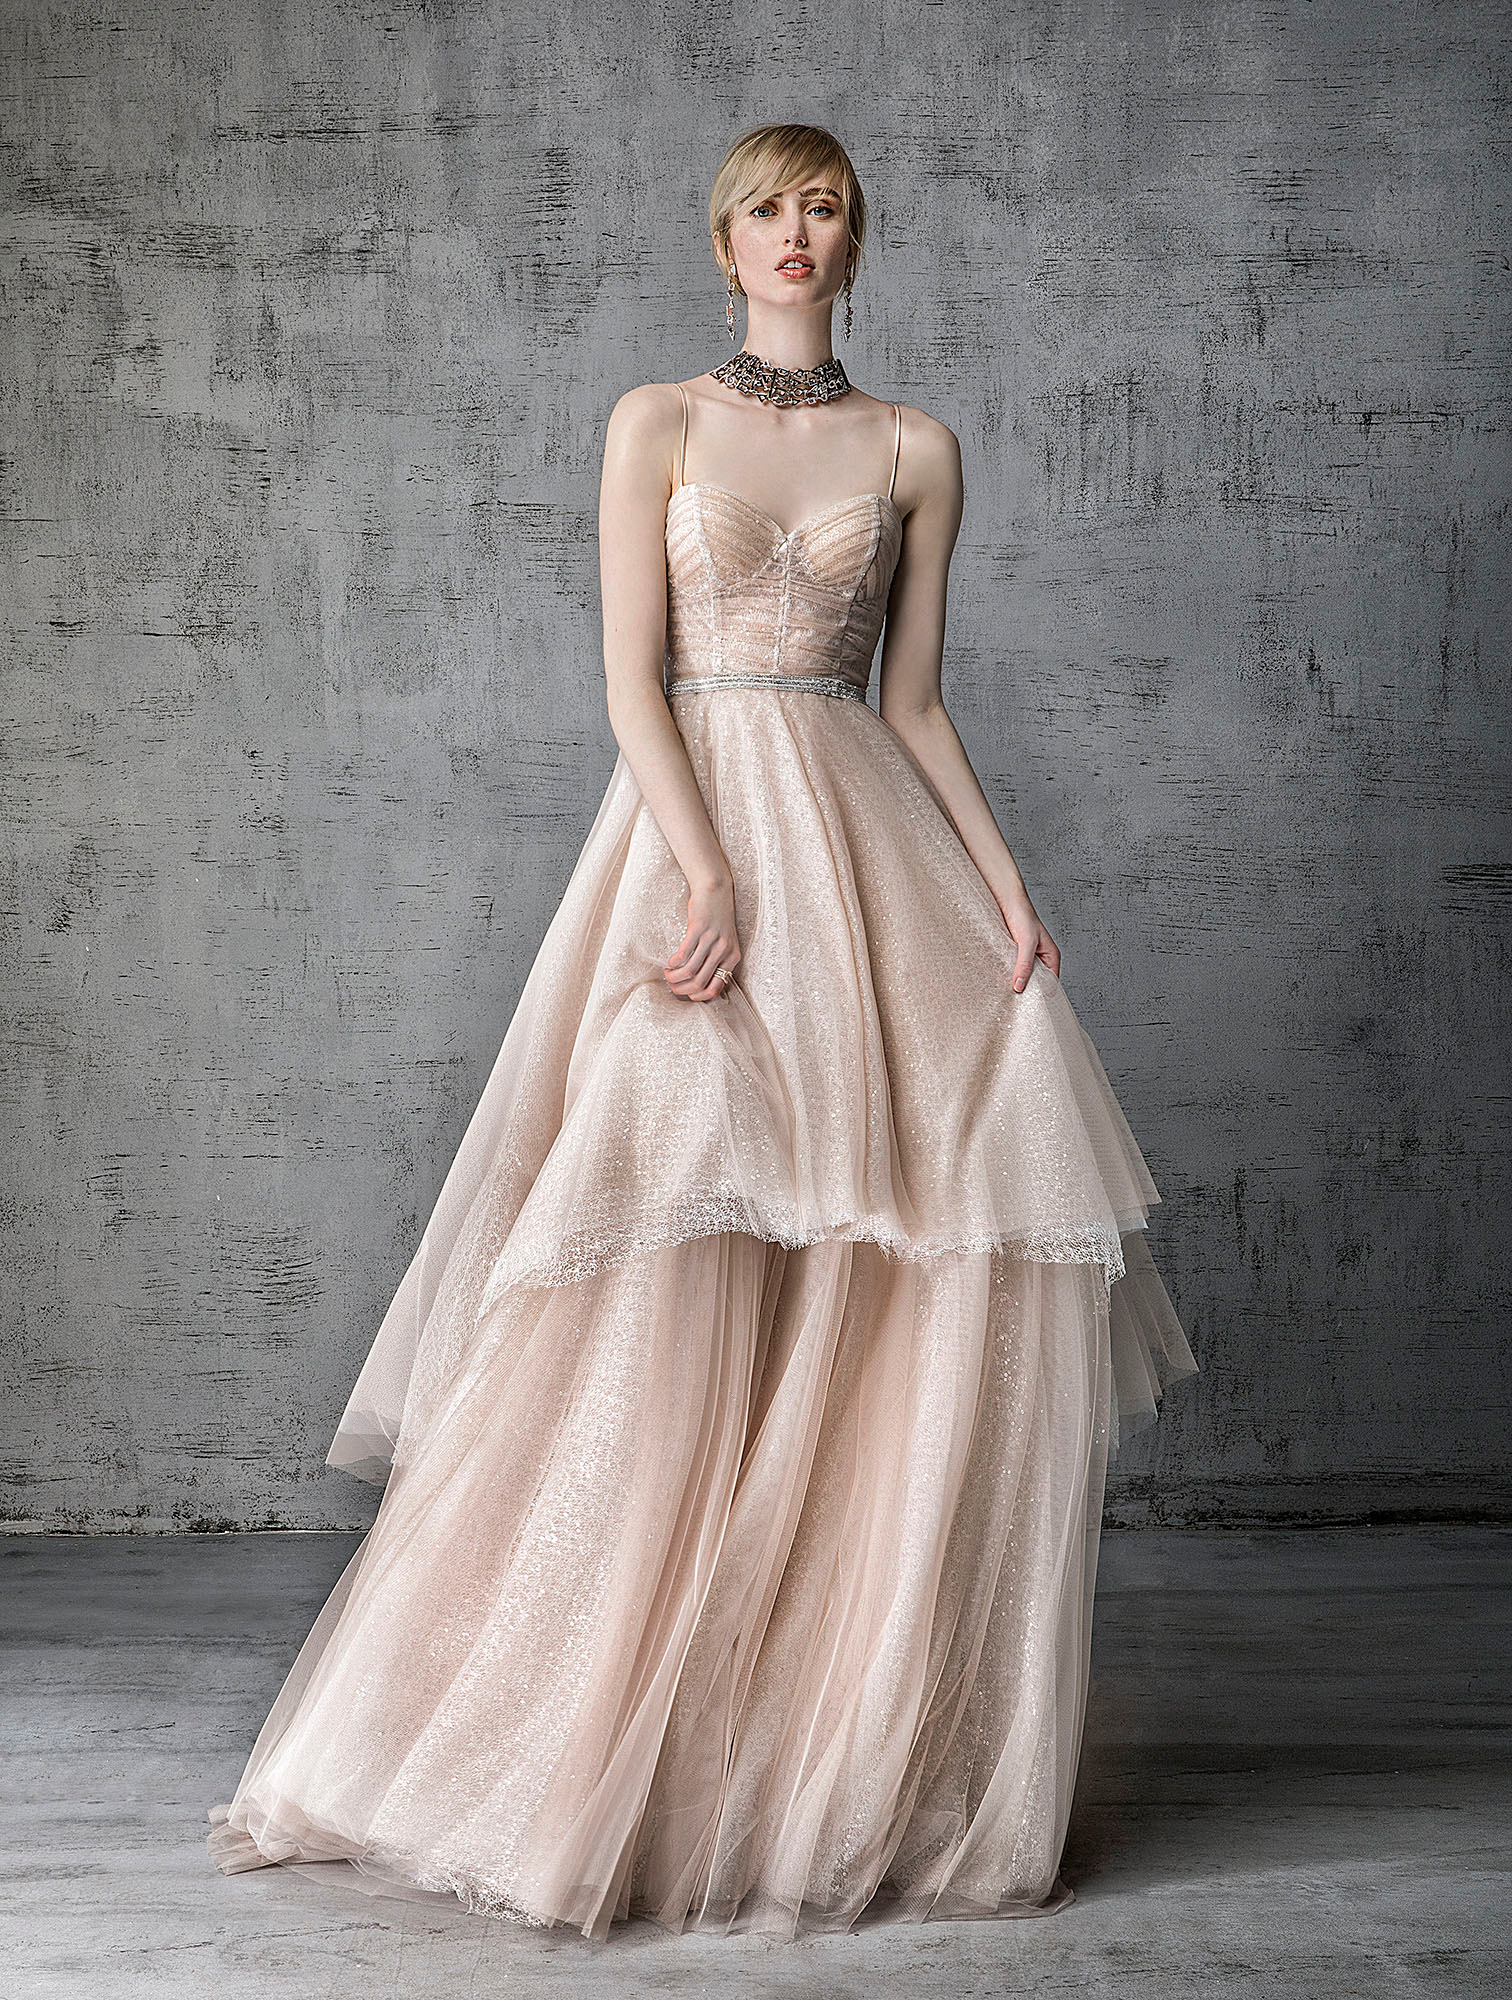 victoria kyriakides wedding dress spring 2019 tiered blush corseted bodice